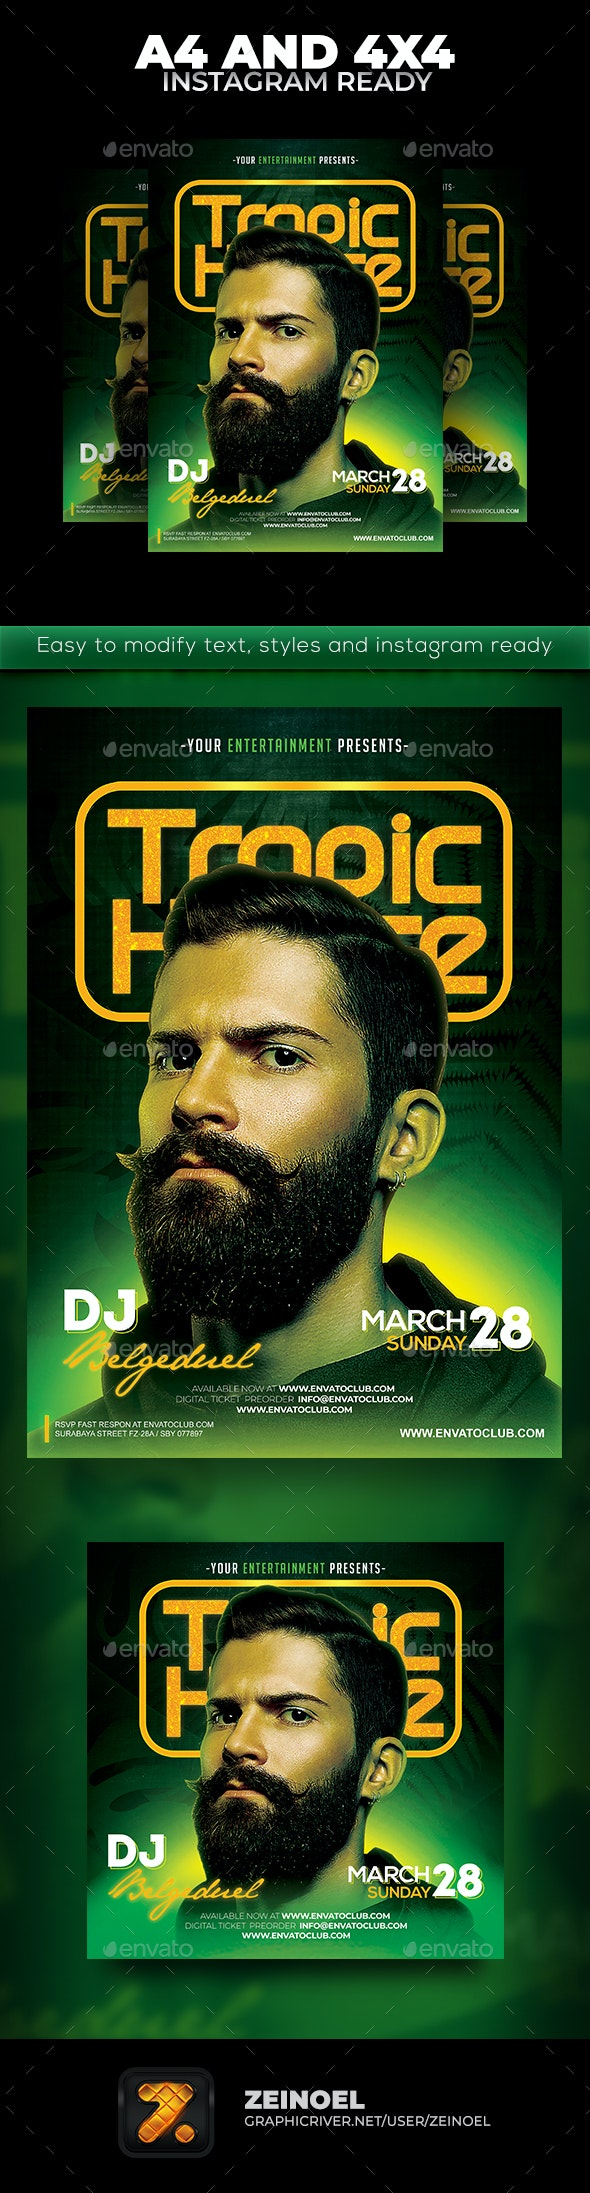 Tropical House Flyer - Clubs & Parties Events